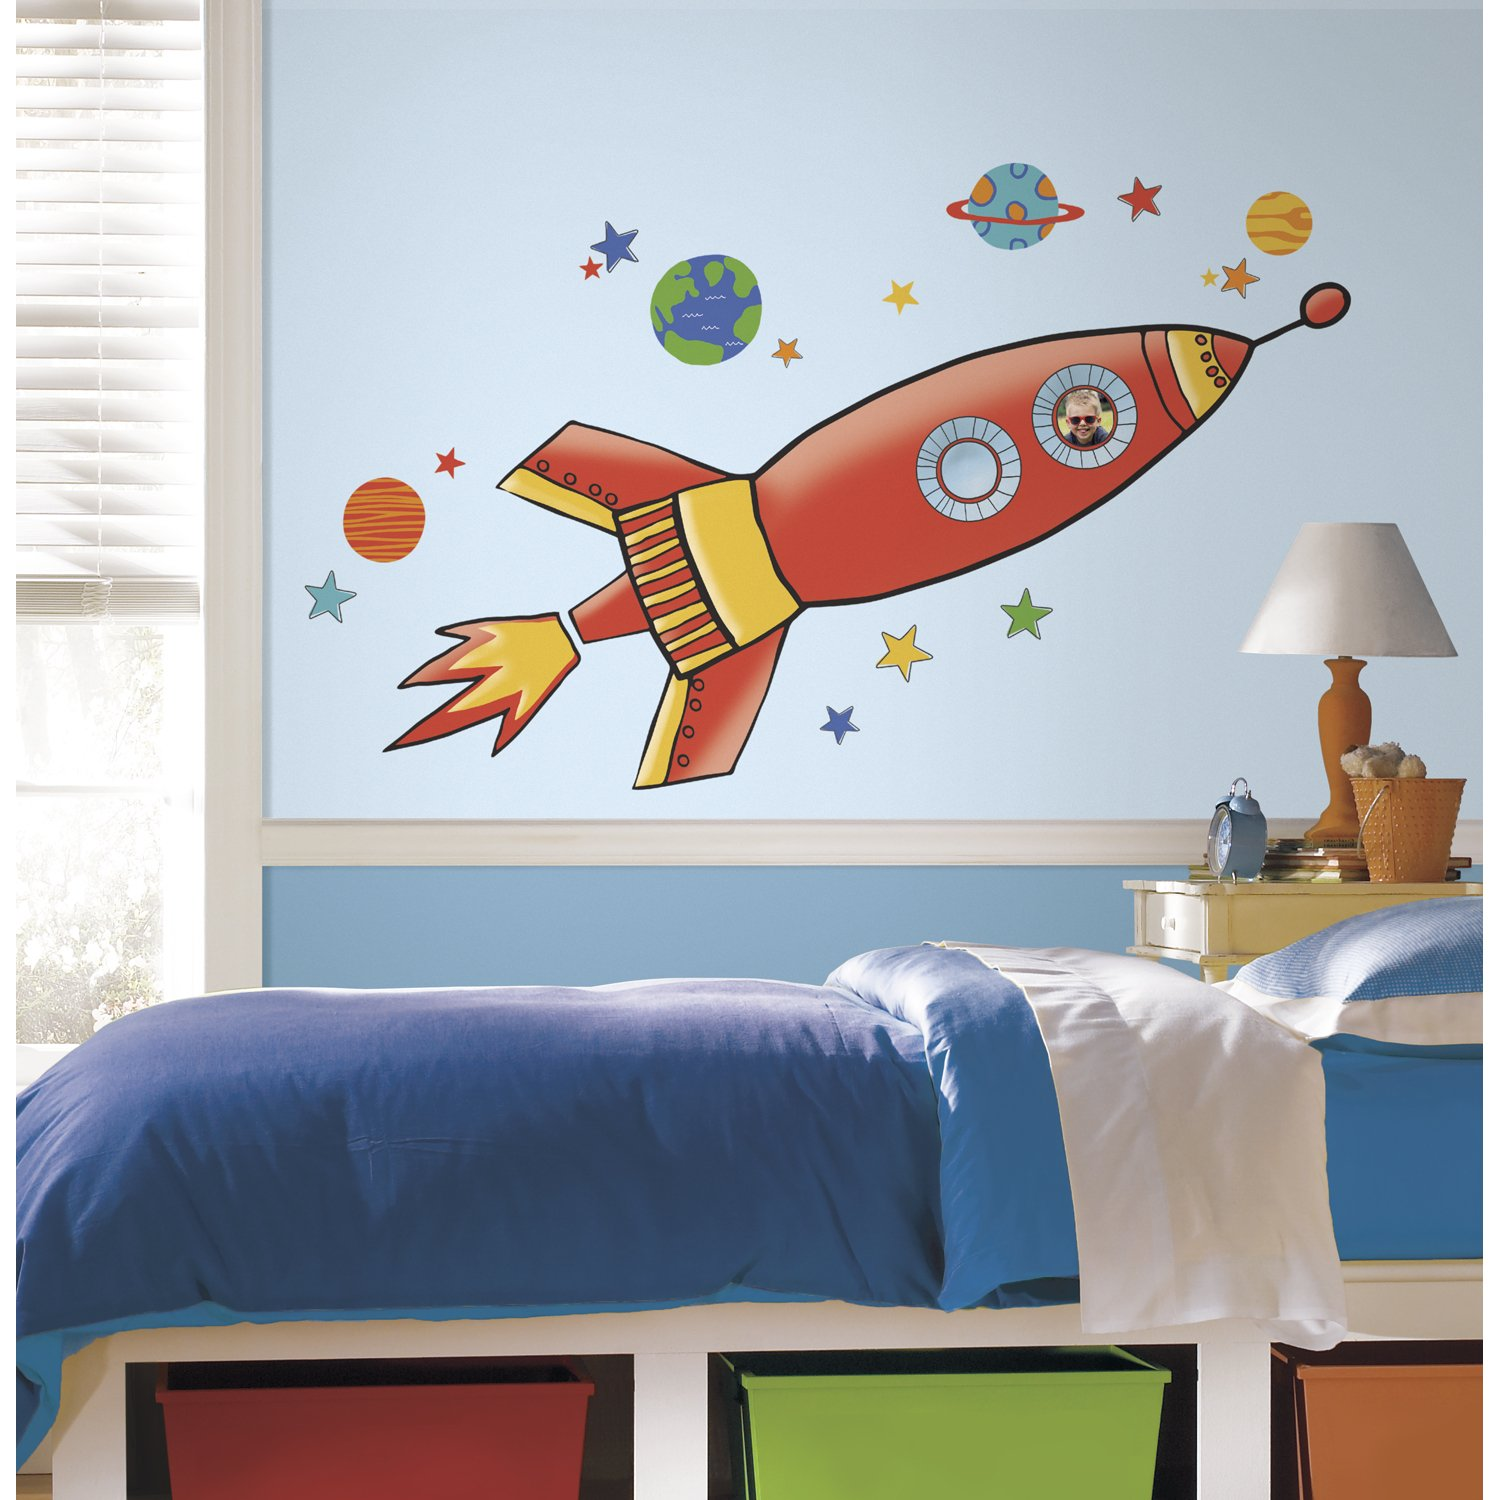 amazoncom roommates rmk2619gm rocket peel and stick giant wall decals home improvement